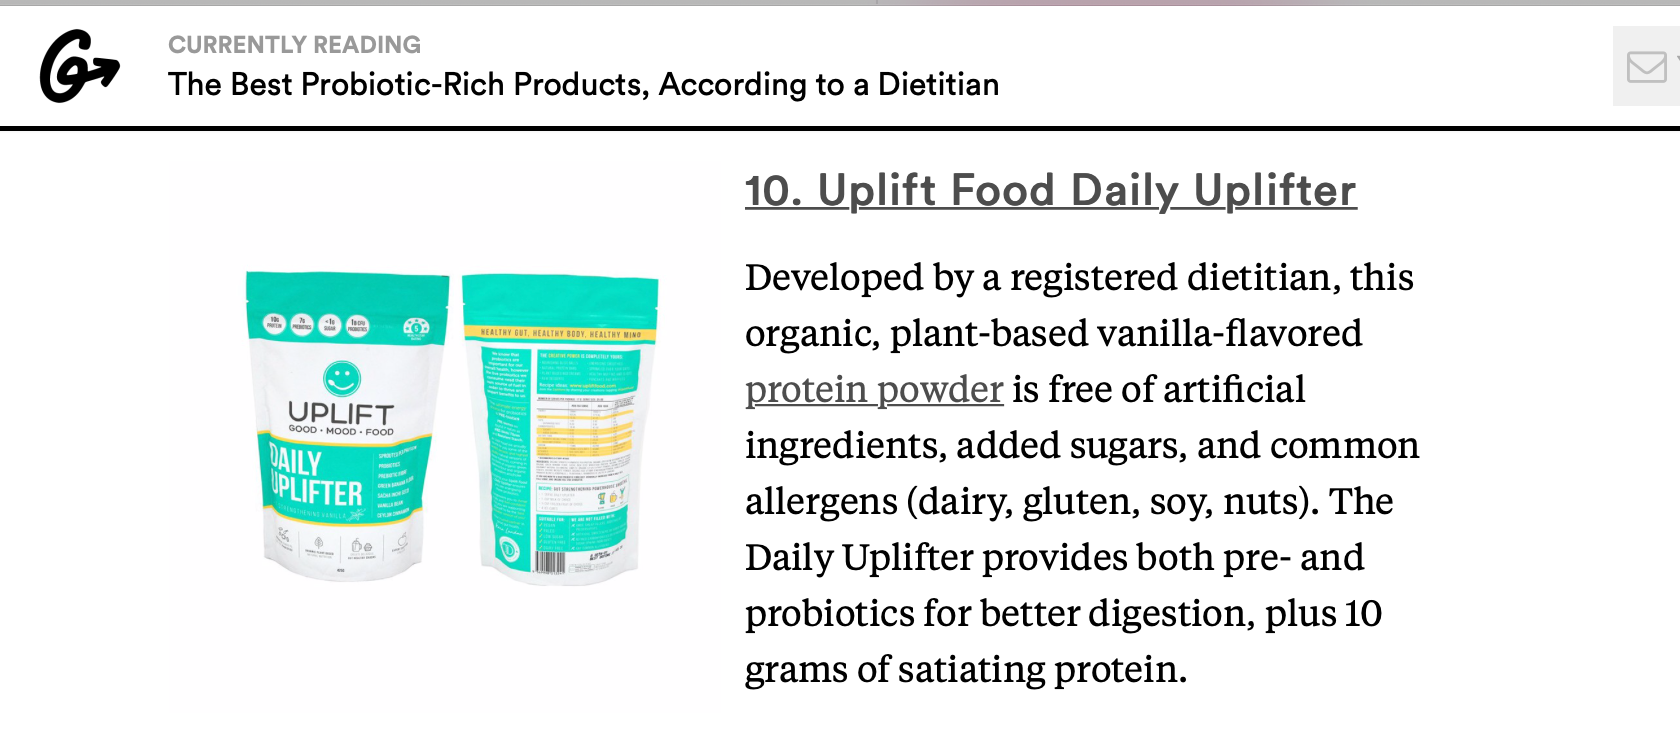 Uplift Food Daily Uplifter best probiotic product prebiotic registered dietitian psychobiotics greatist.com